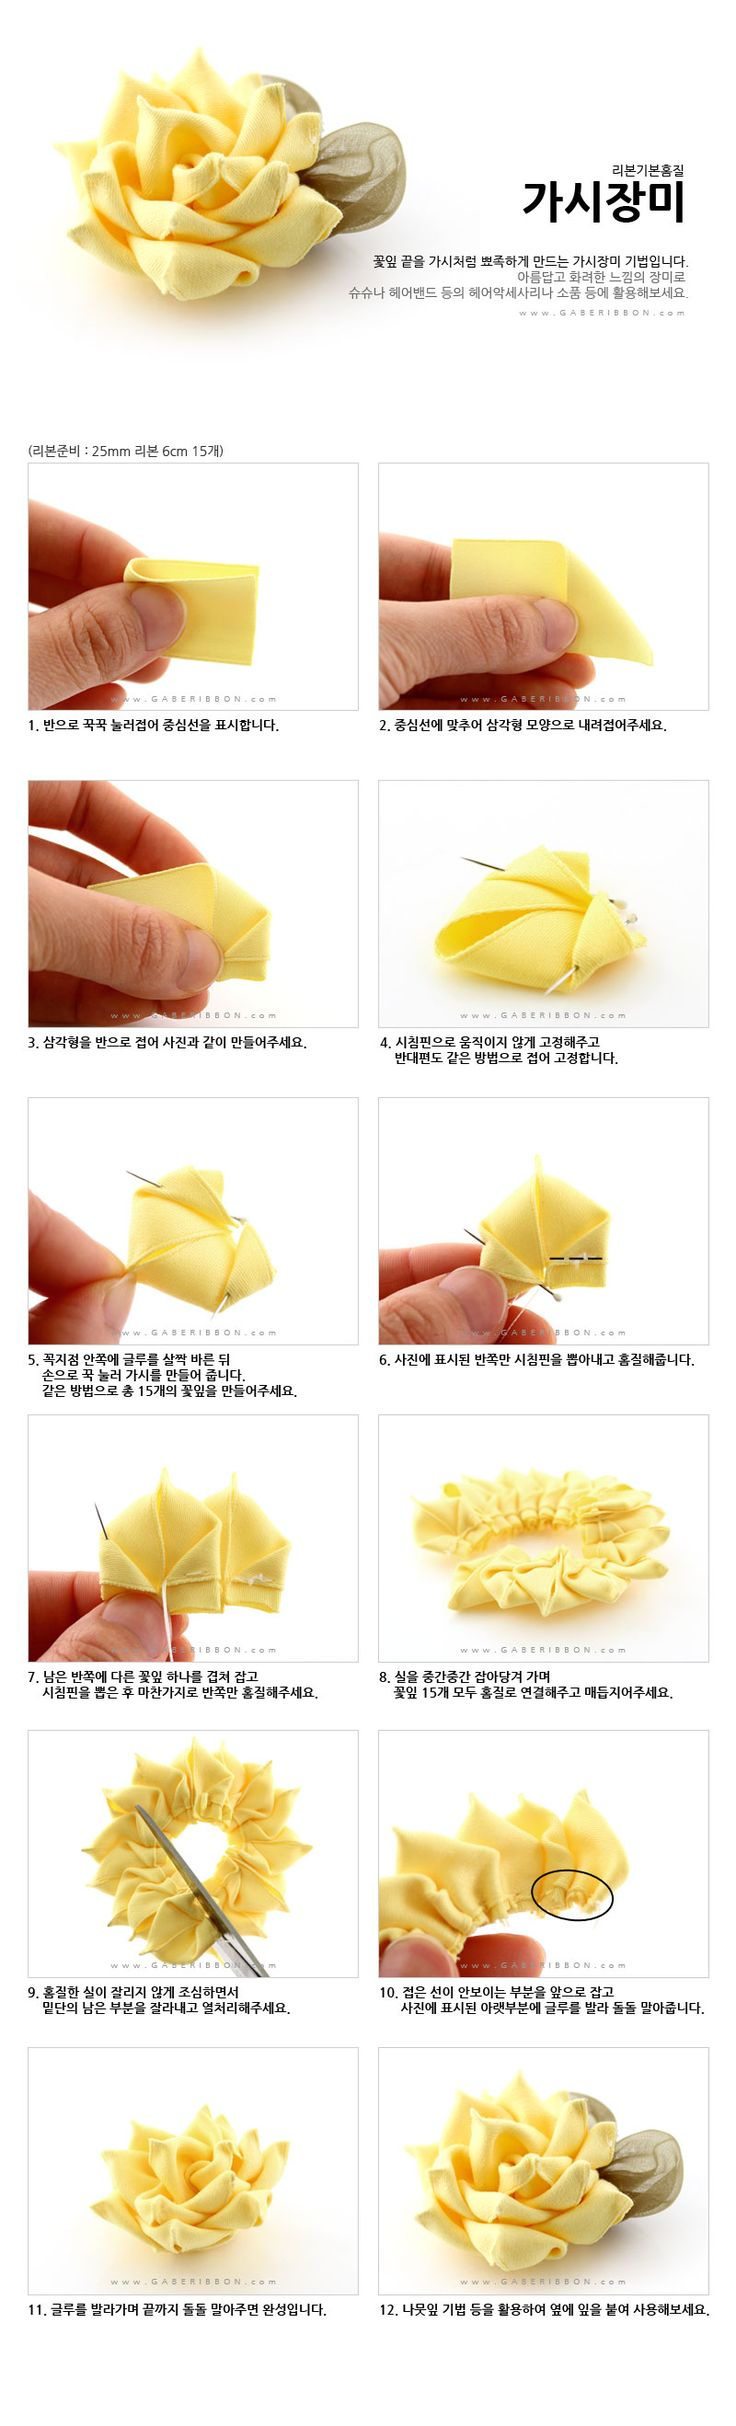 """Ribbon DIY ... (Not in English, but the pics are awesome enough to """"get it"""" anyway) .... http://gaberibbon.com/starter/starter_sub.html?send_title=96_mode=3#"""